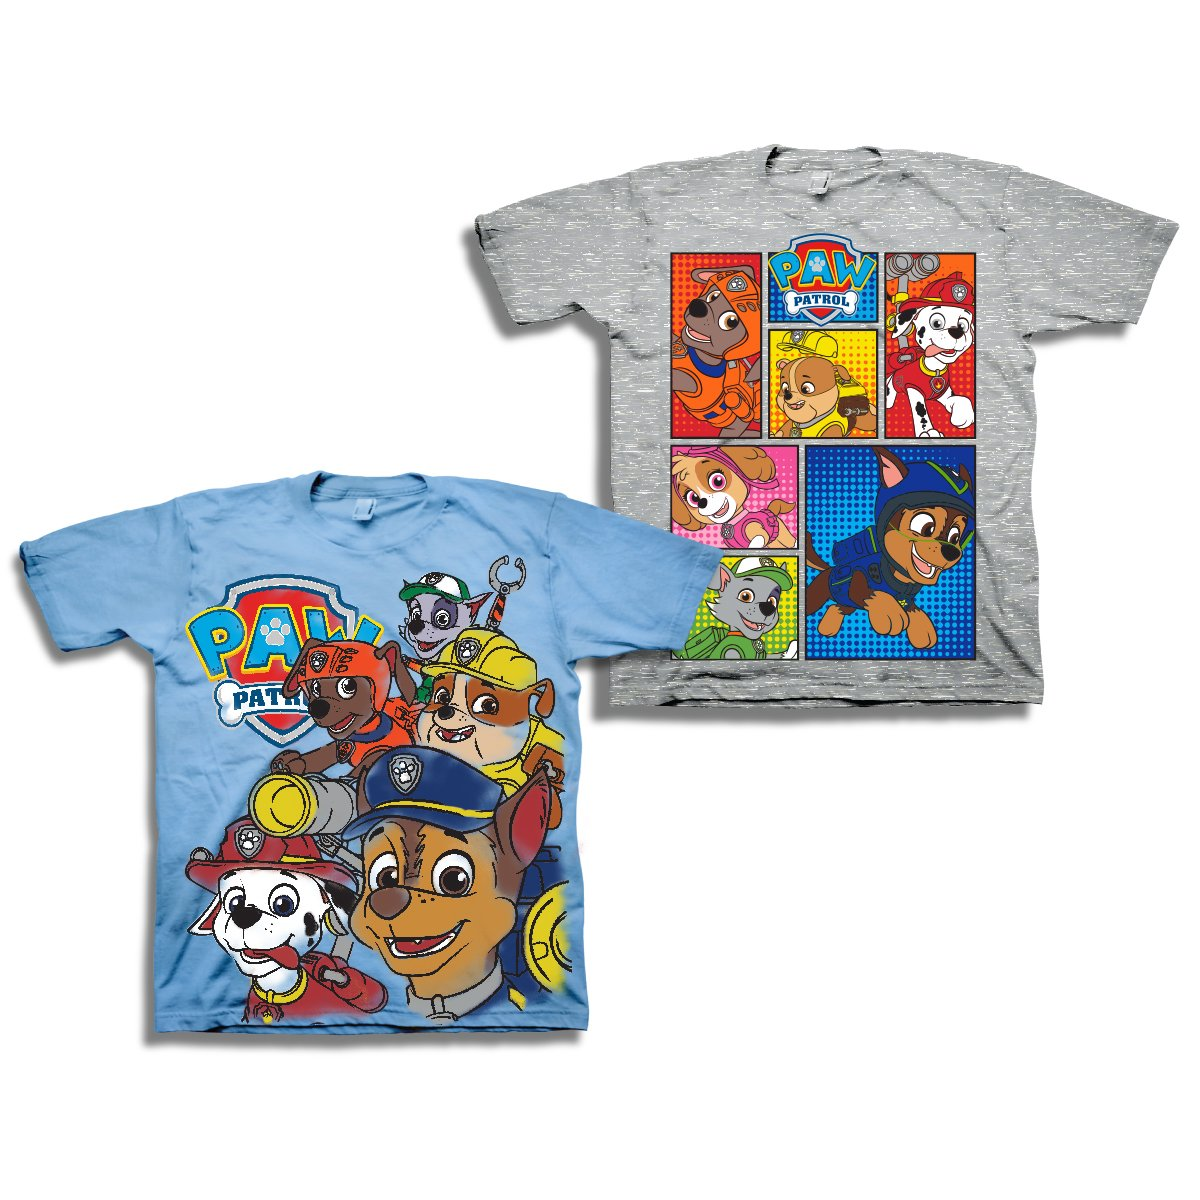 PAW Patrol Short Sleeve T-Shirt - 2 Pack of PAW Patrol T-Shirts (Blue/Grey, 4T)